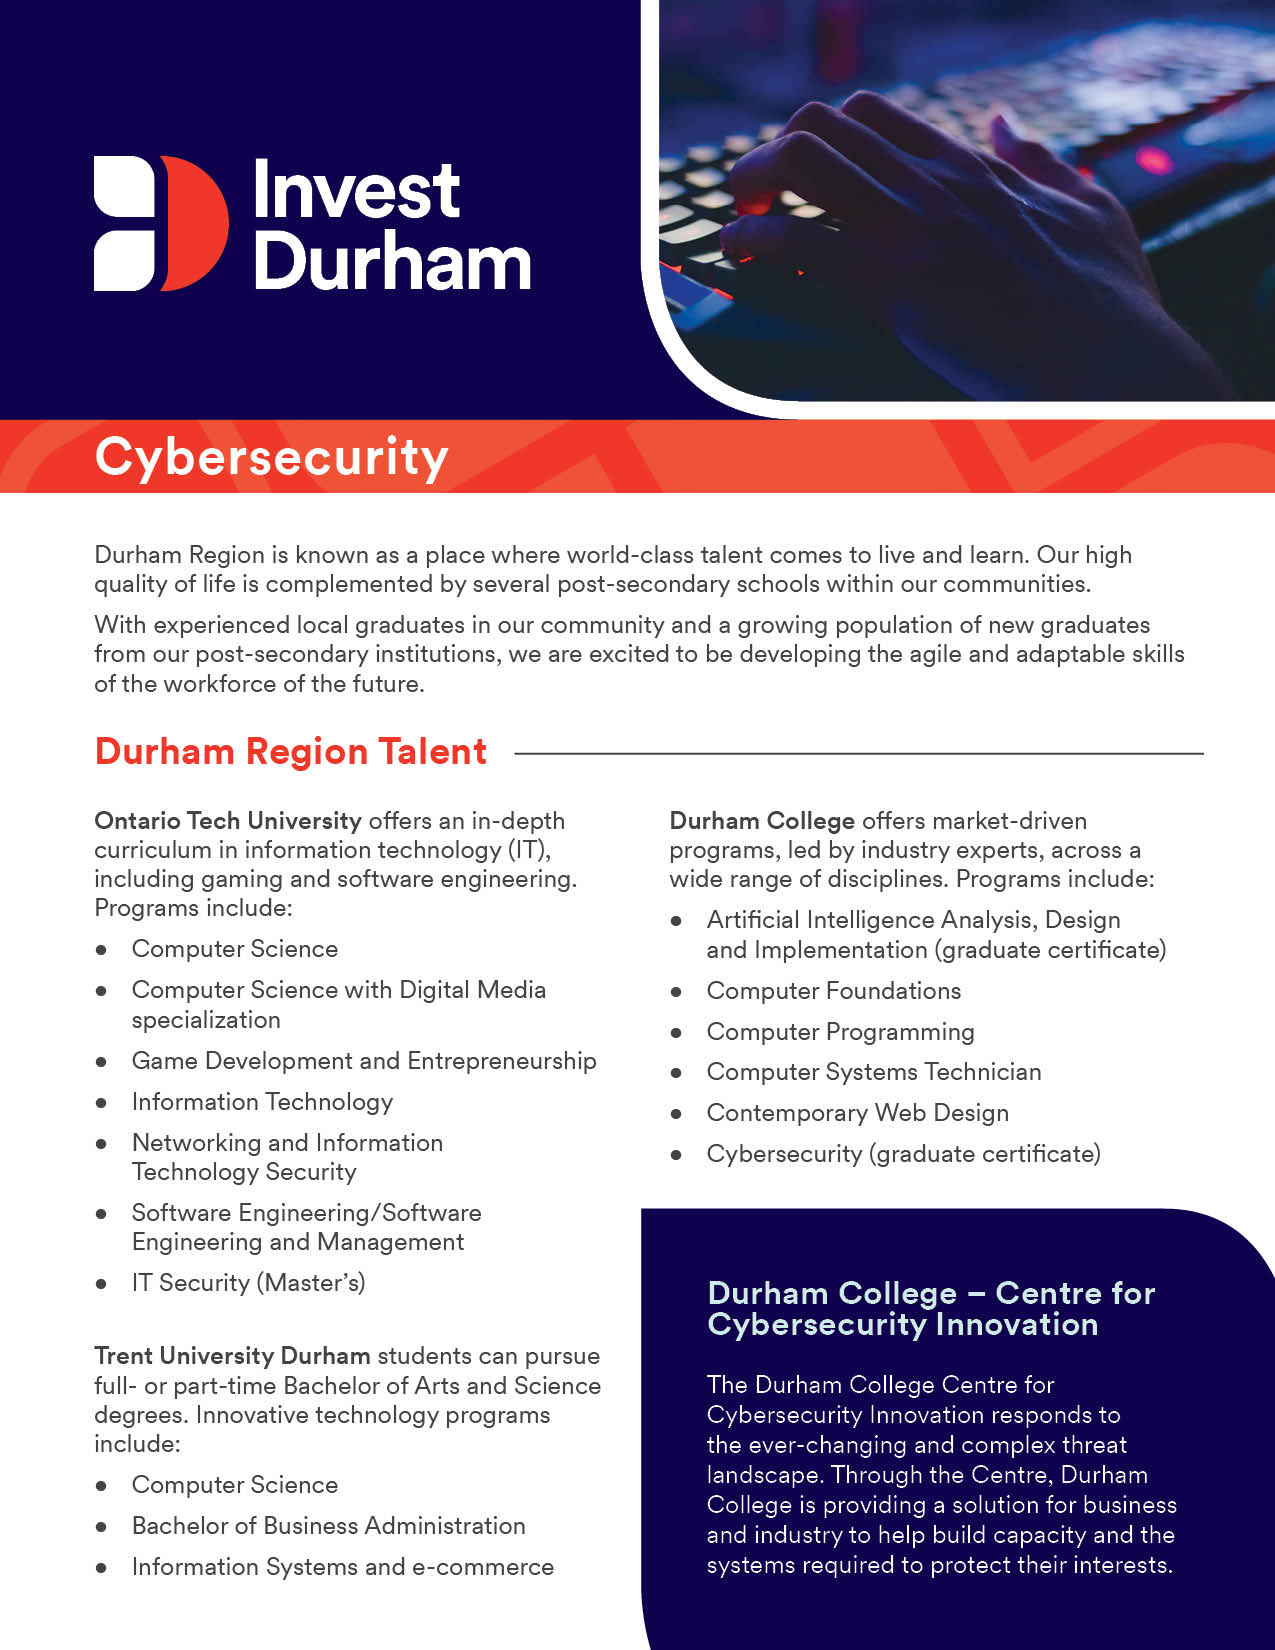 Invest Durham Cybersecurity PDF thumbnail.